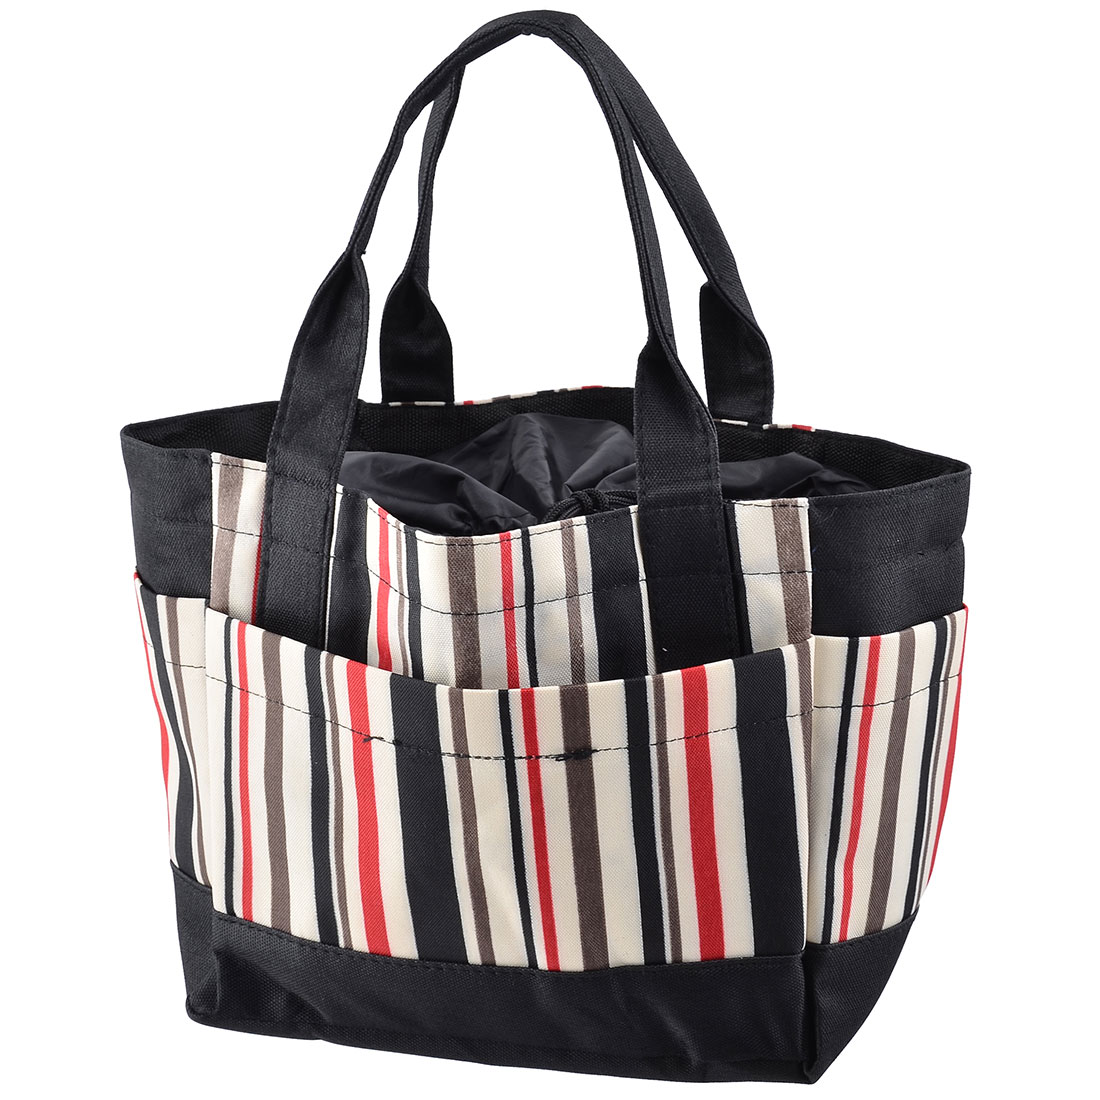 Camping Hiking Oxford Fabric Stripe Print Drawstring Closure Brunch Cooler Bag